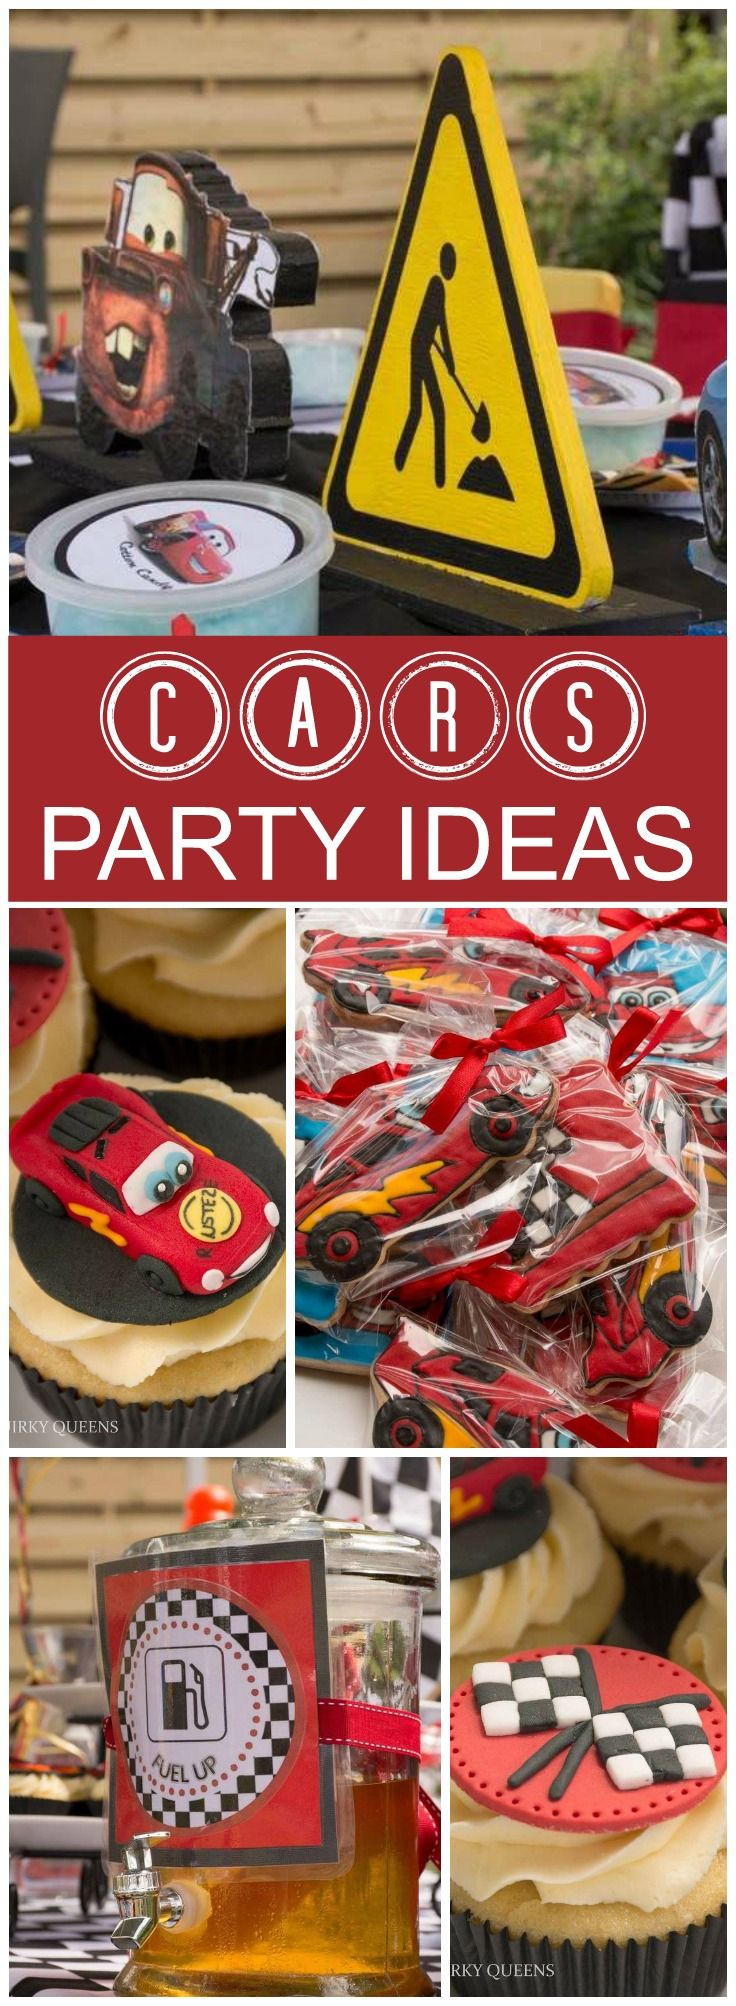 Wedding decorations on cars   best candy bar images on Pinterest  Cars birthday parties